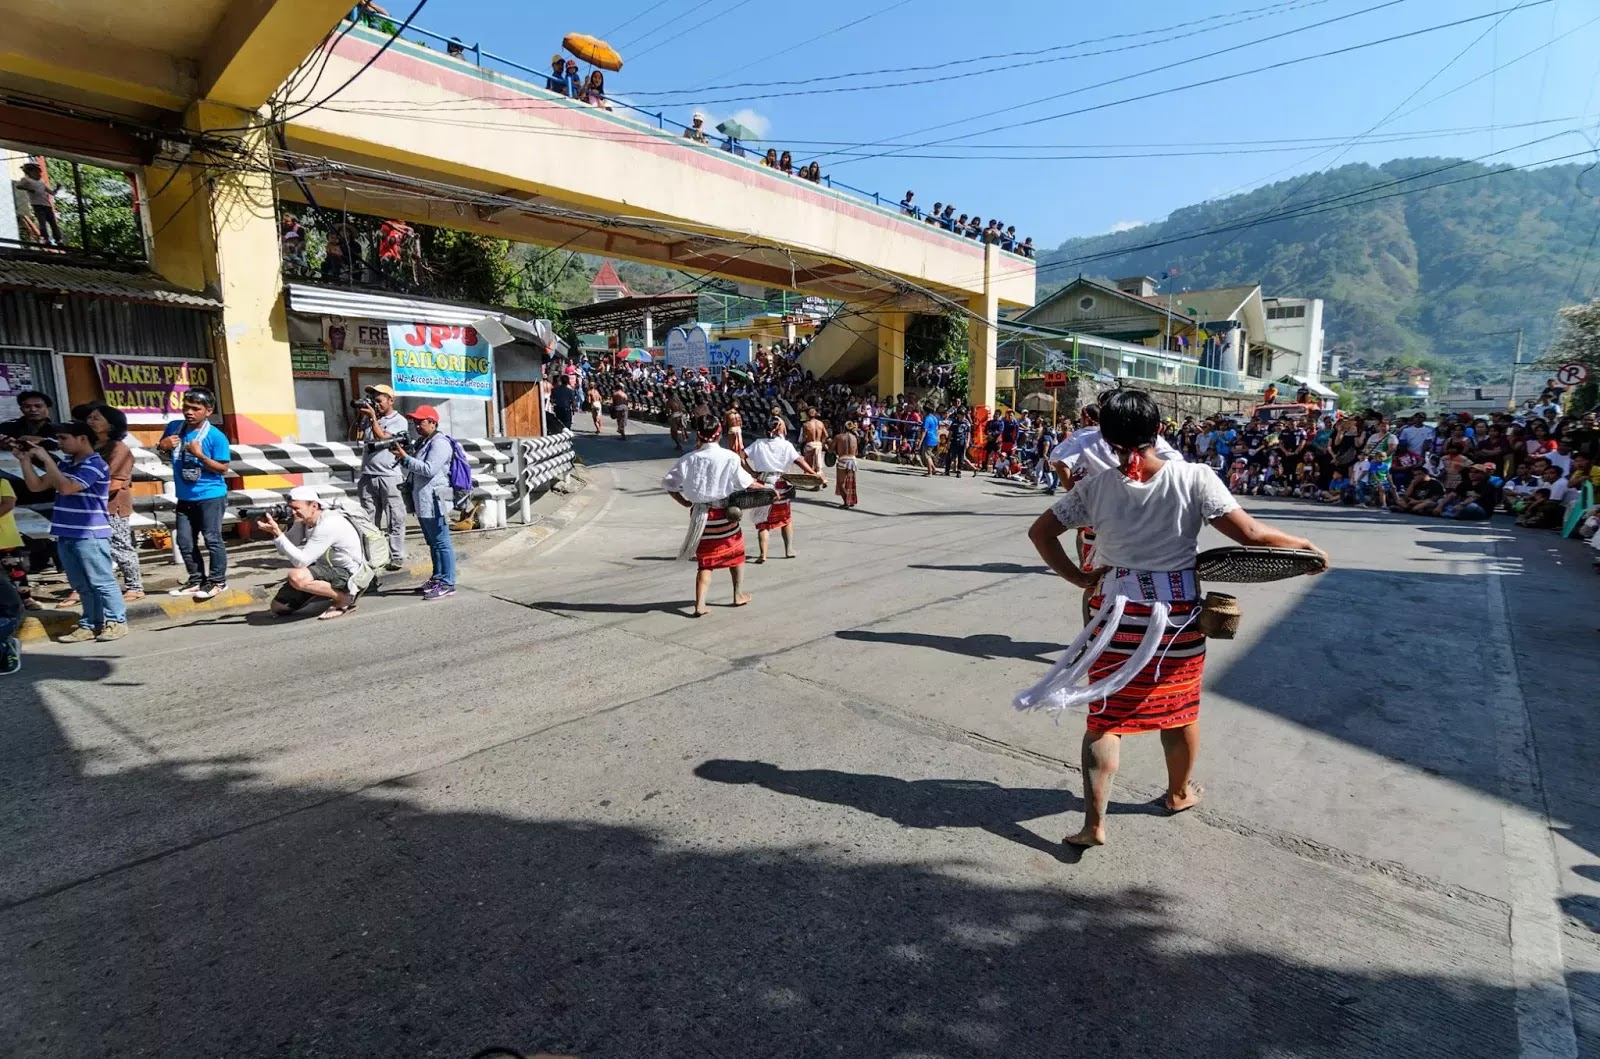 Mountain Province 13th lang-Ay Festival Street Dancing in the Streets of Bontoc Under the Bridge.